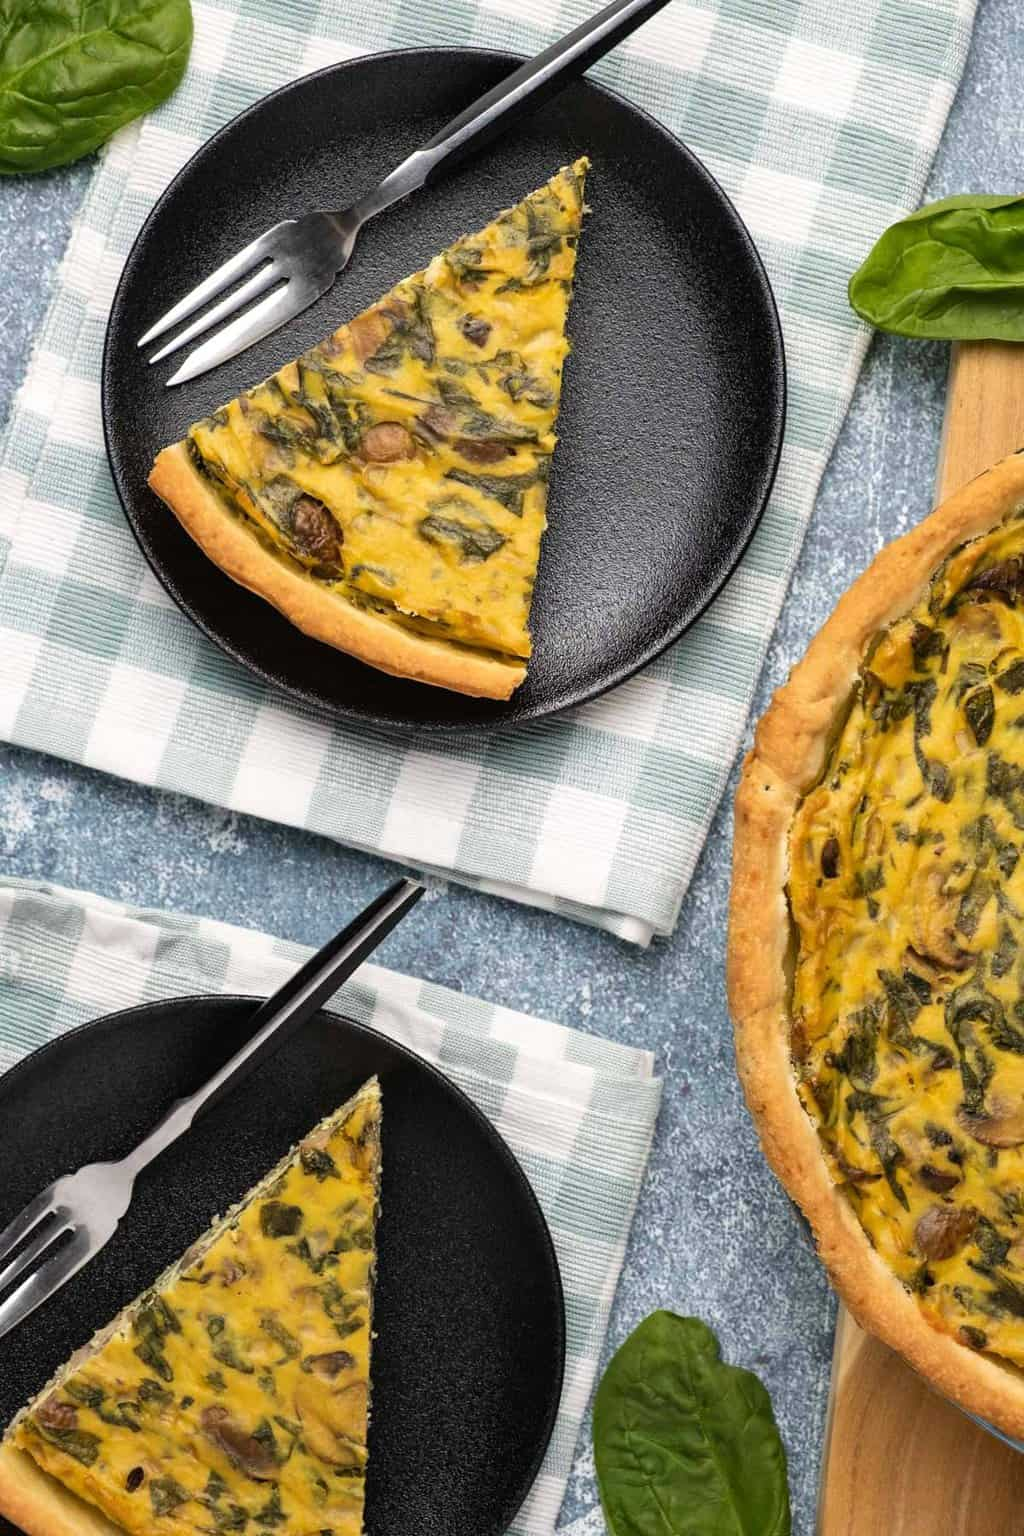 Slices of vegan quiche on black plates with forks.